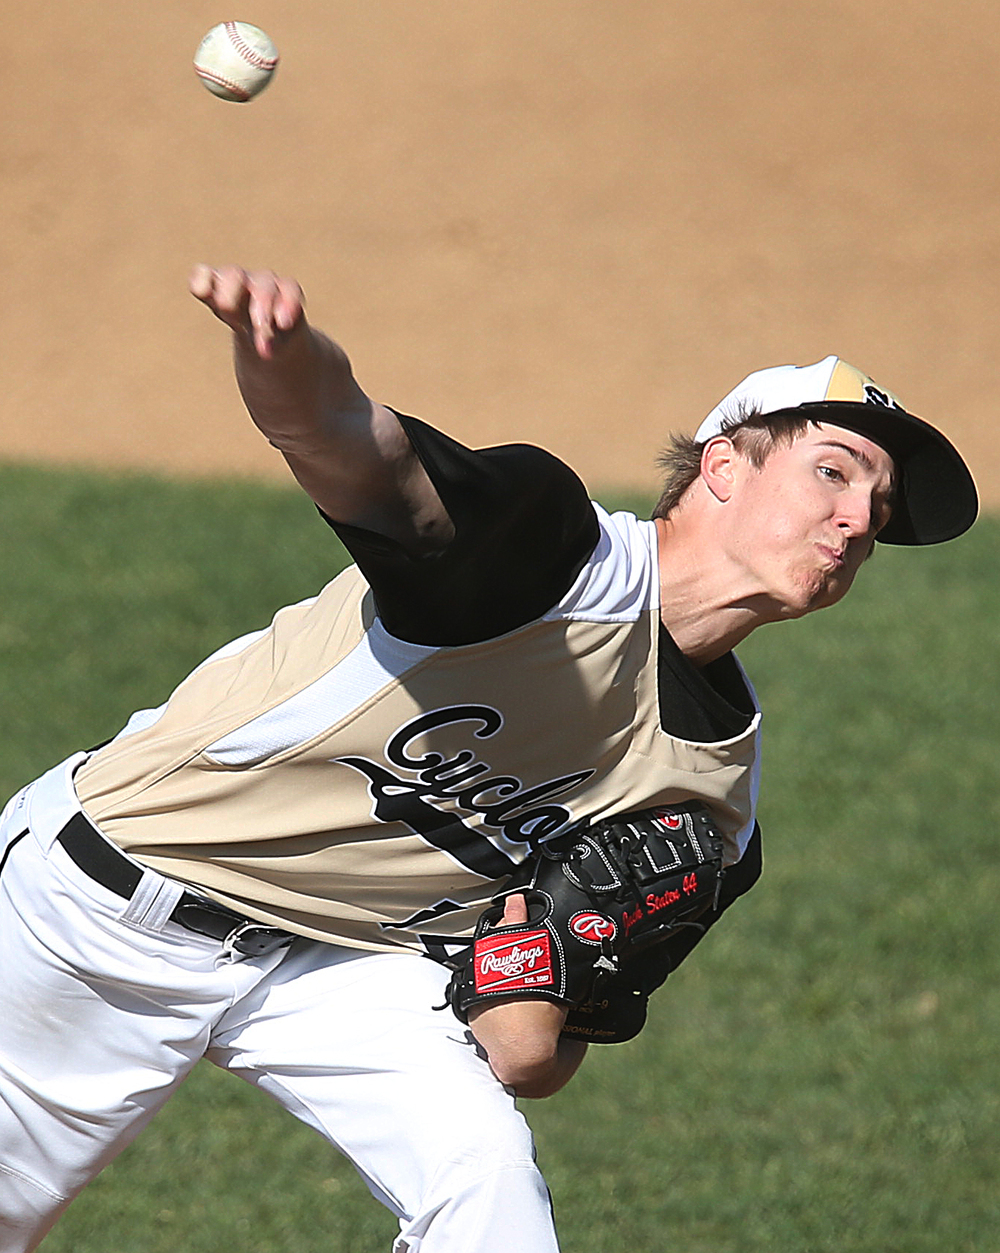 SHG pitcher Jack Staten was the winning pitcher. The Sacred Heart Griffin Cyclones defeated the Lanphier High School Lions 15-5 to win the championship of the City Series Baseball Tournament at Robin Roberts Stadium in Springfield on Tuesday, May 12, 2015. David Spencer/The State Journal-Register